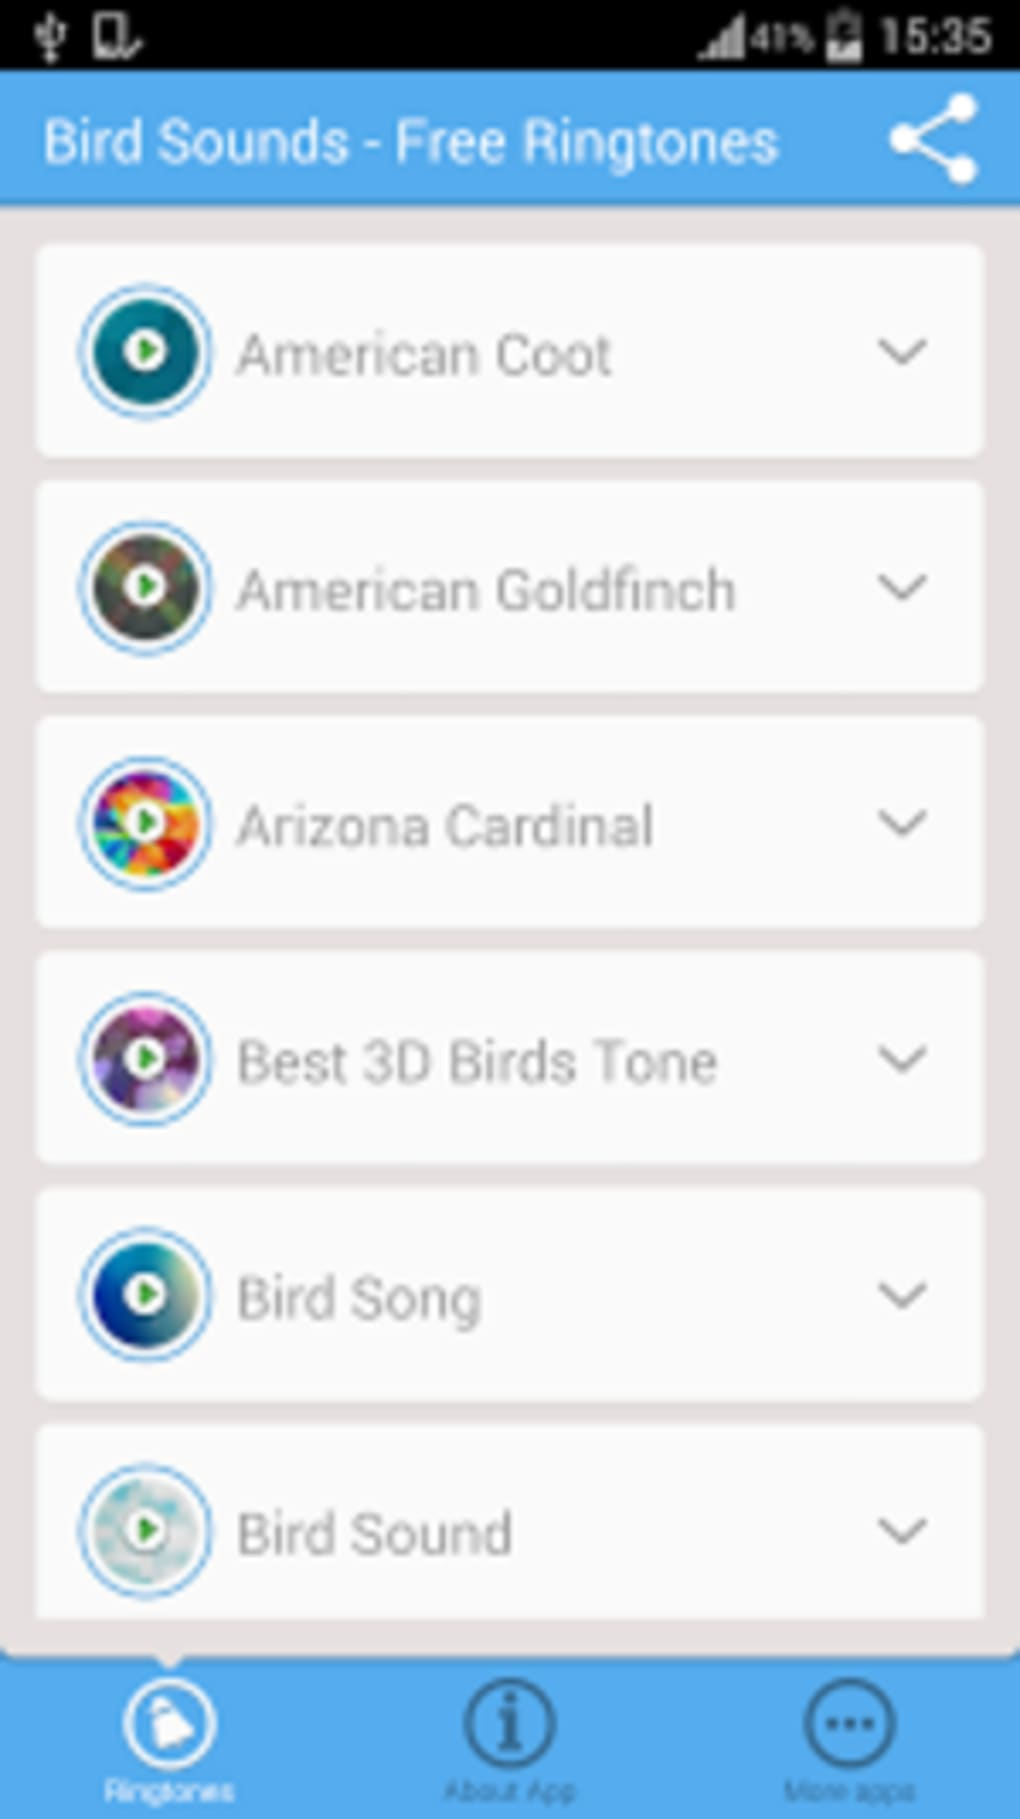 Bird Sounds - Free Ringtones for Android - Download